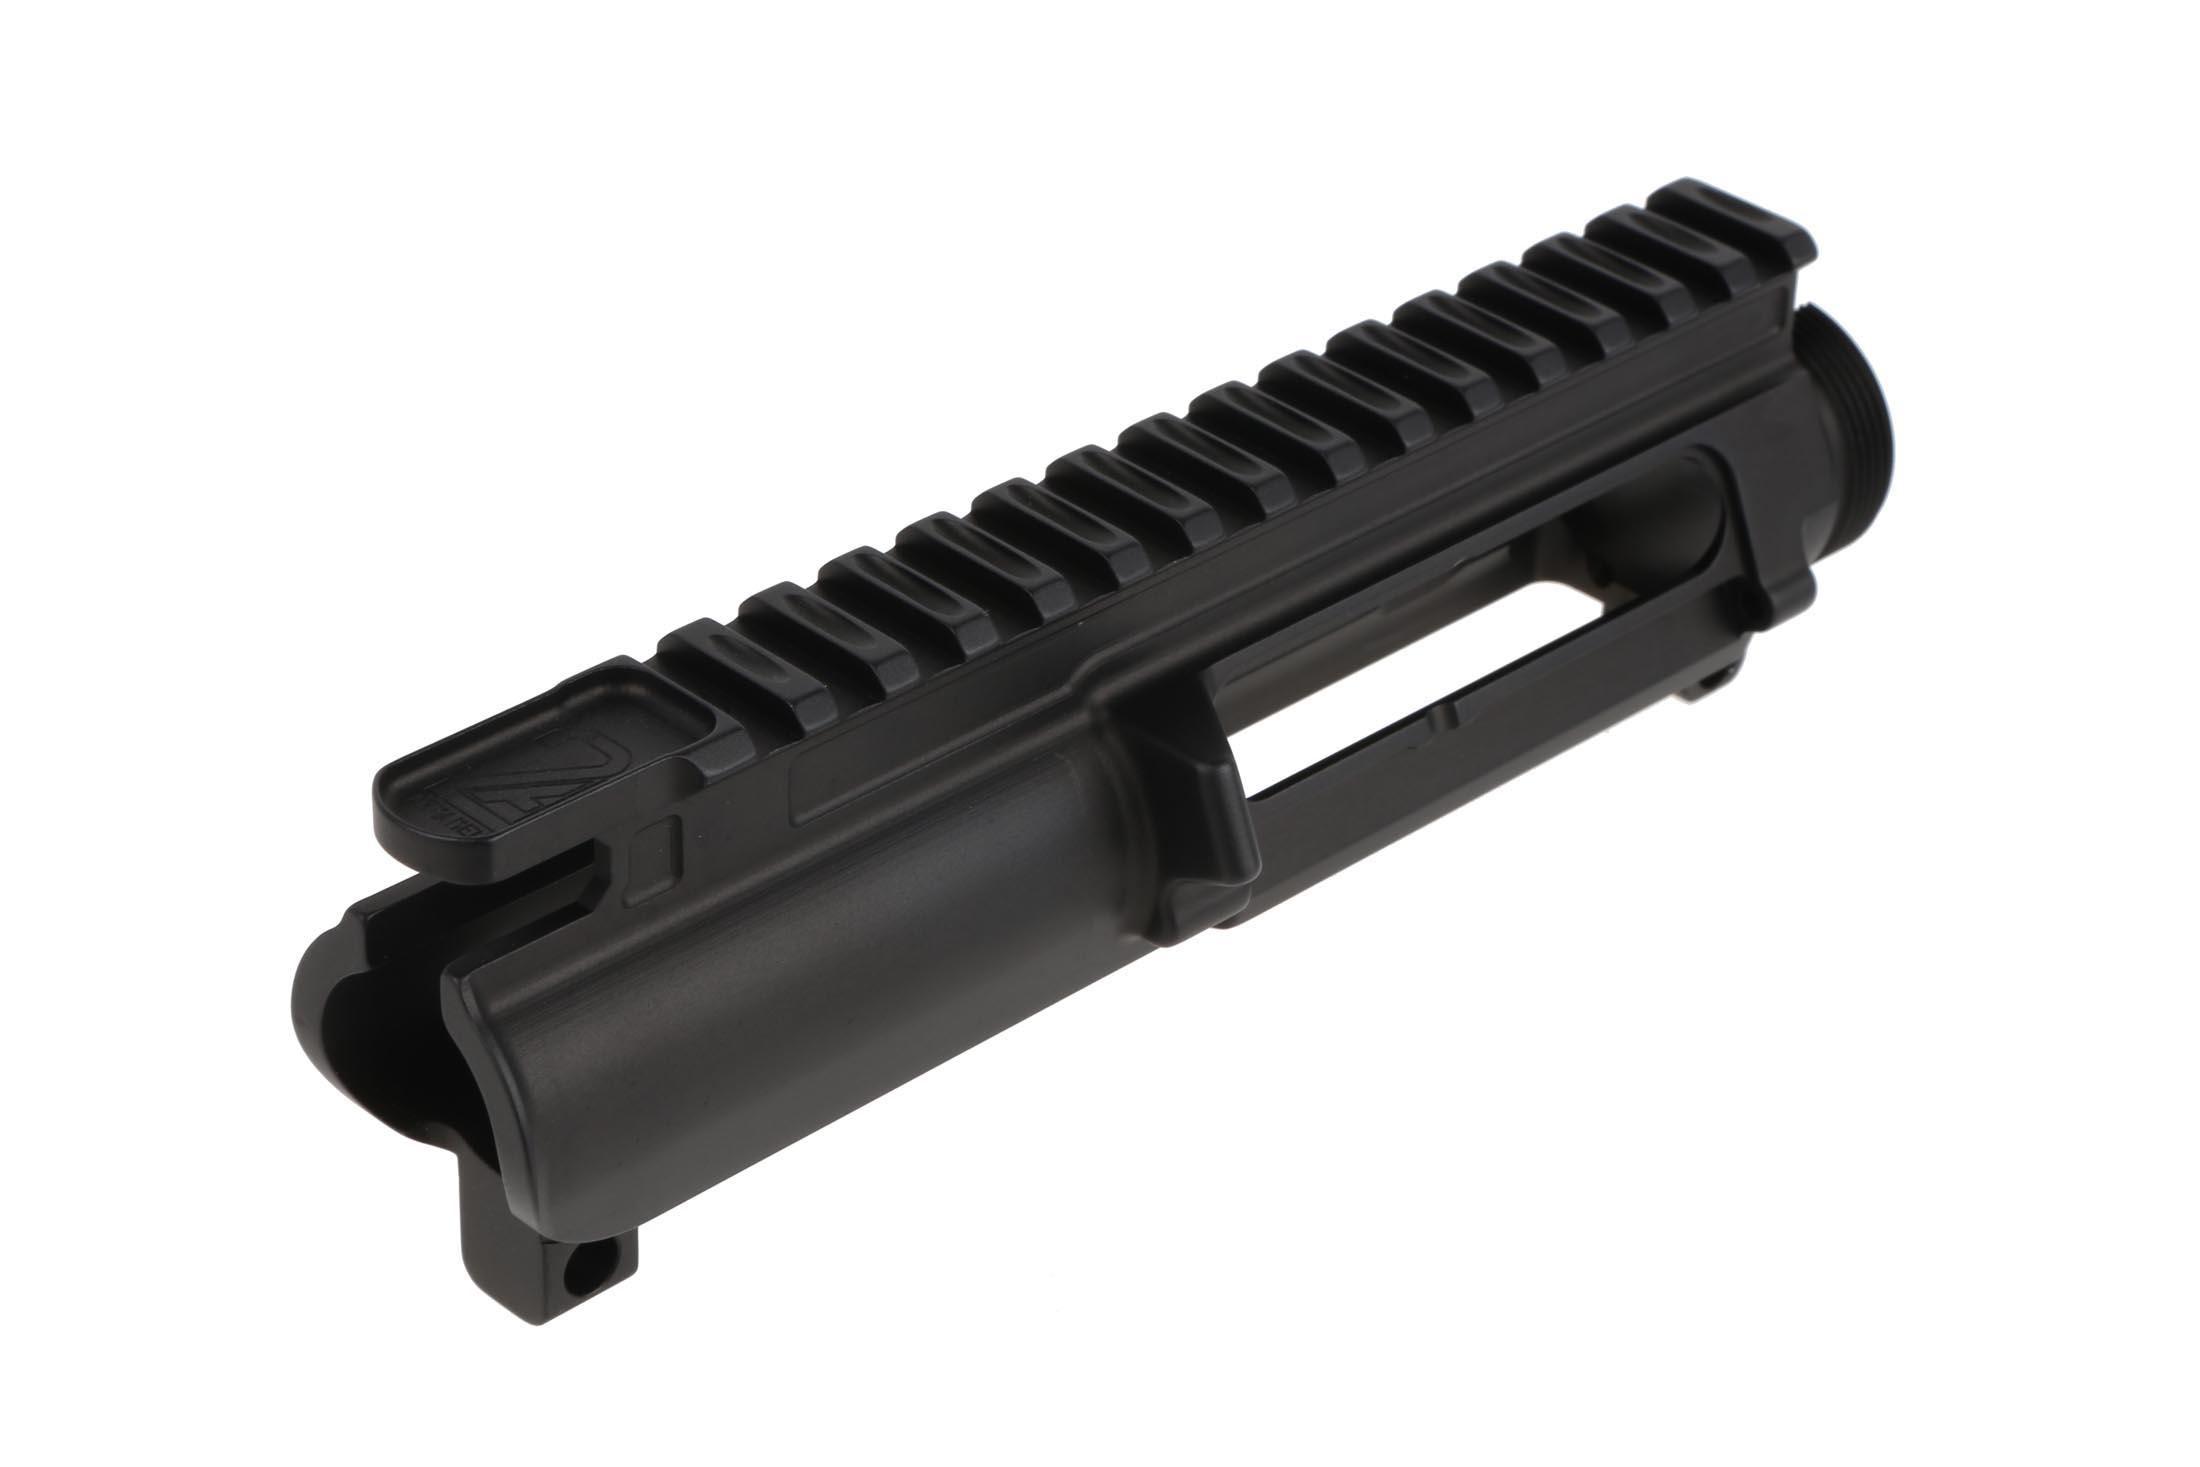 The 2A Armament Balios Lite upper receiver has cuts on the picatinny rail to reduce weight